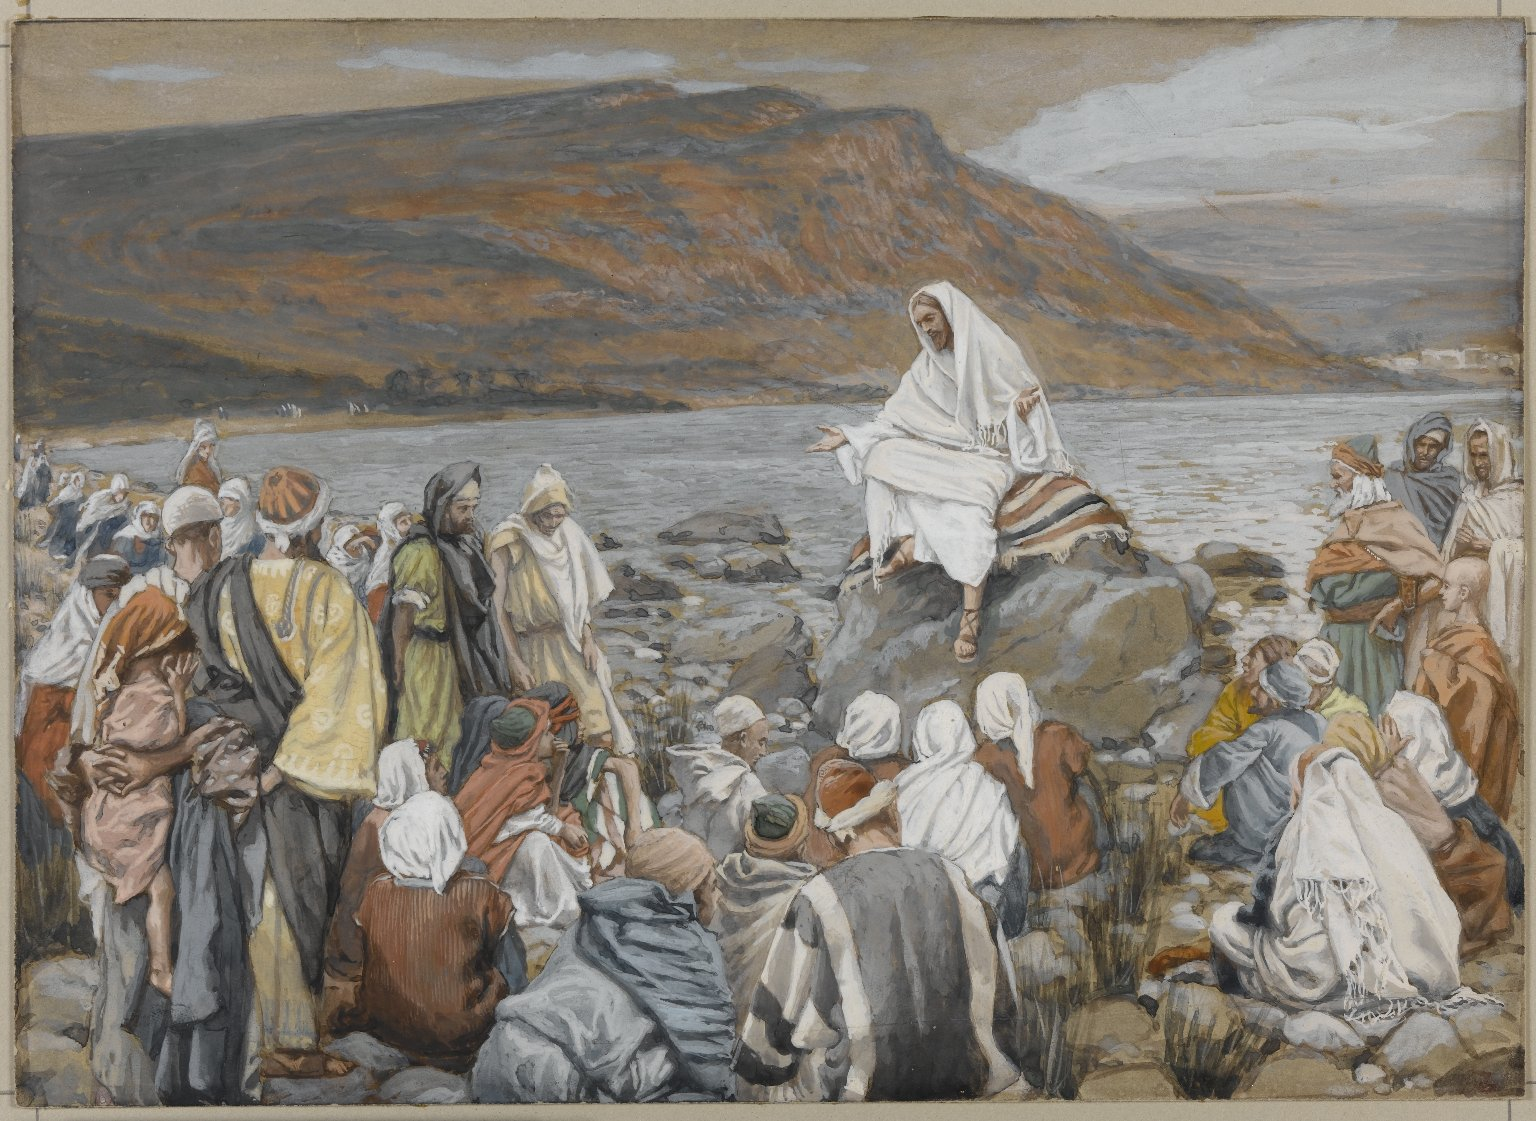 James Tissot: Jesus teaches the crowd by the sea